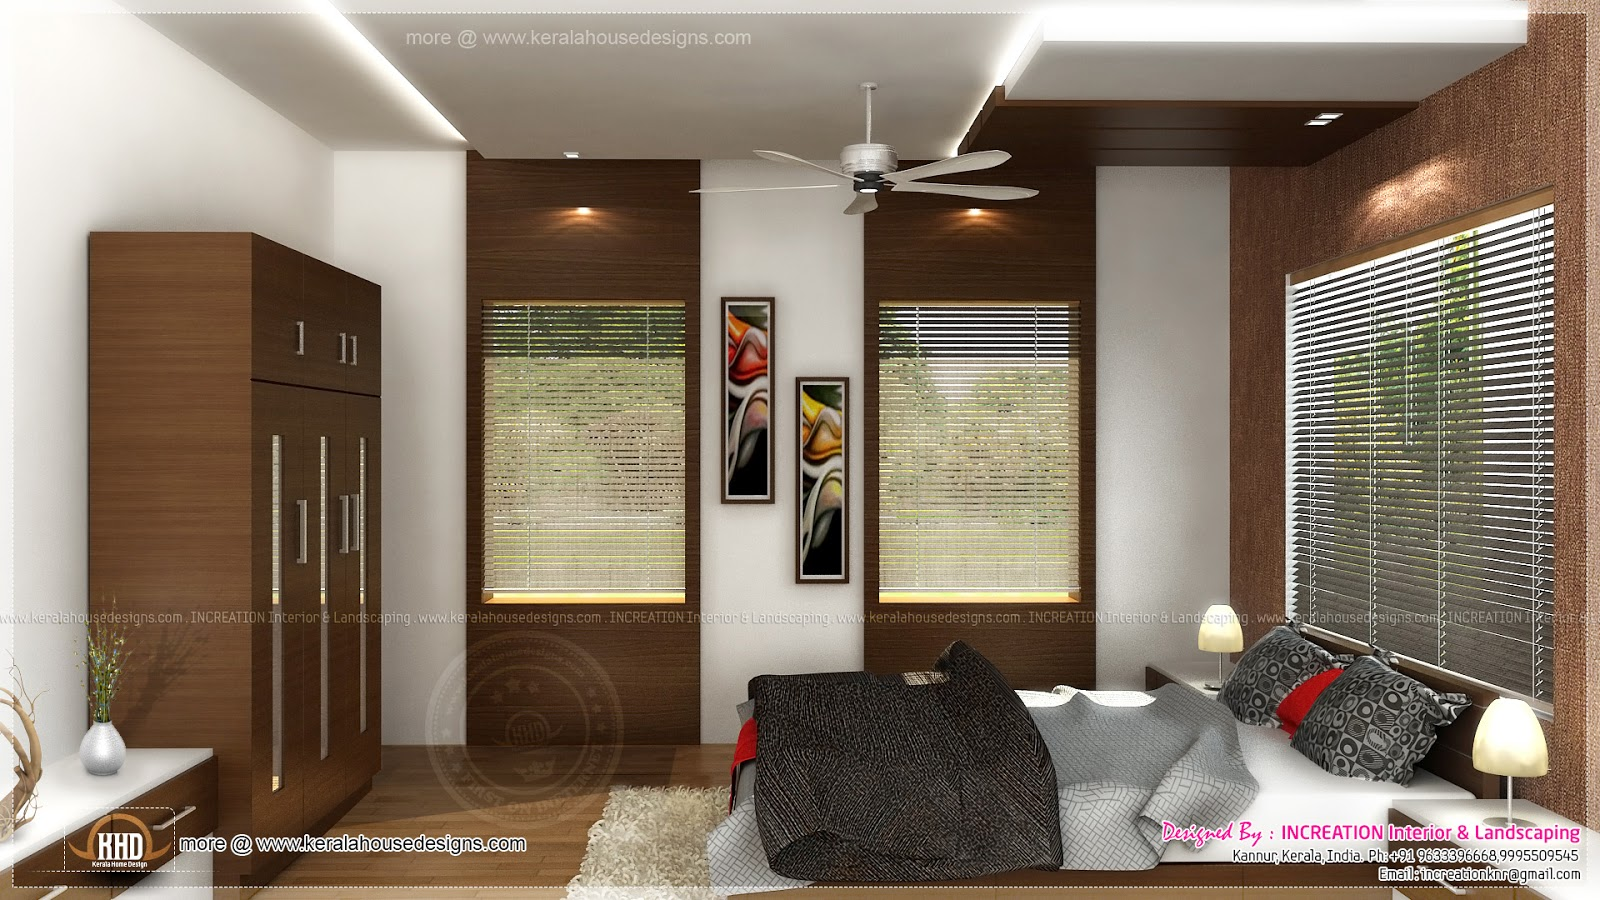 Interior designs from kannur kerala home kerala plans for Kerala home interior designs photos